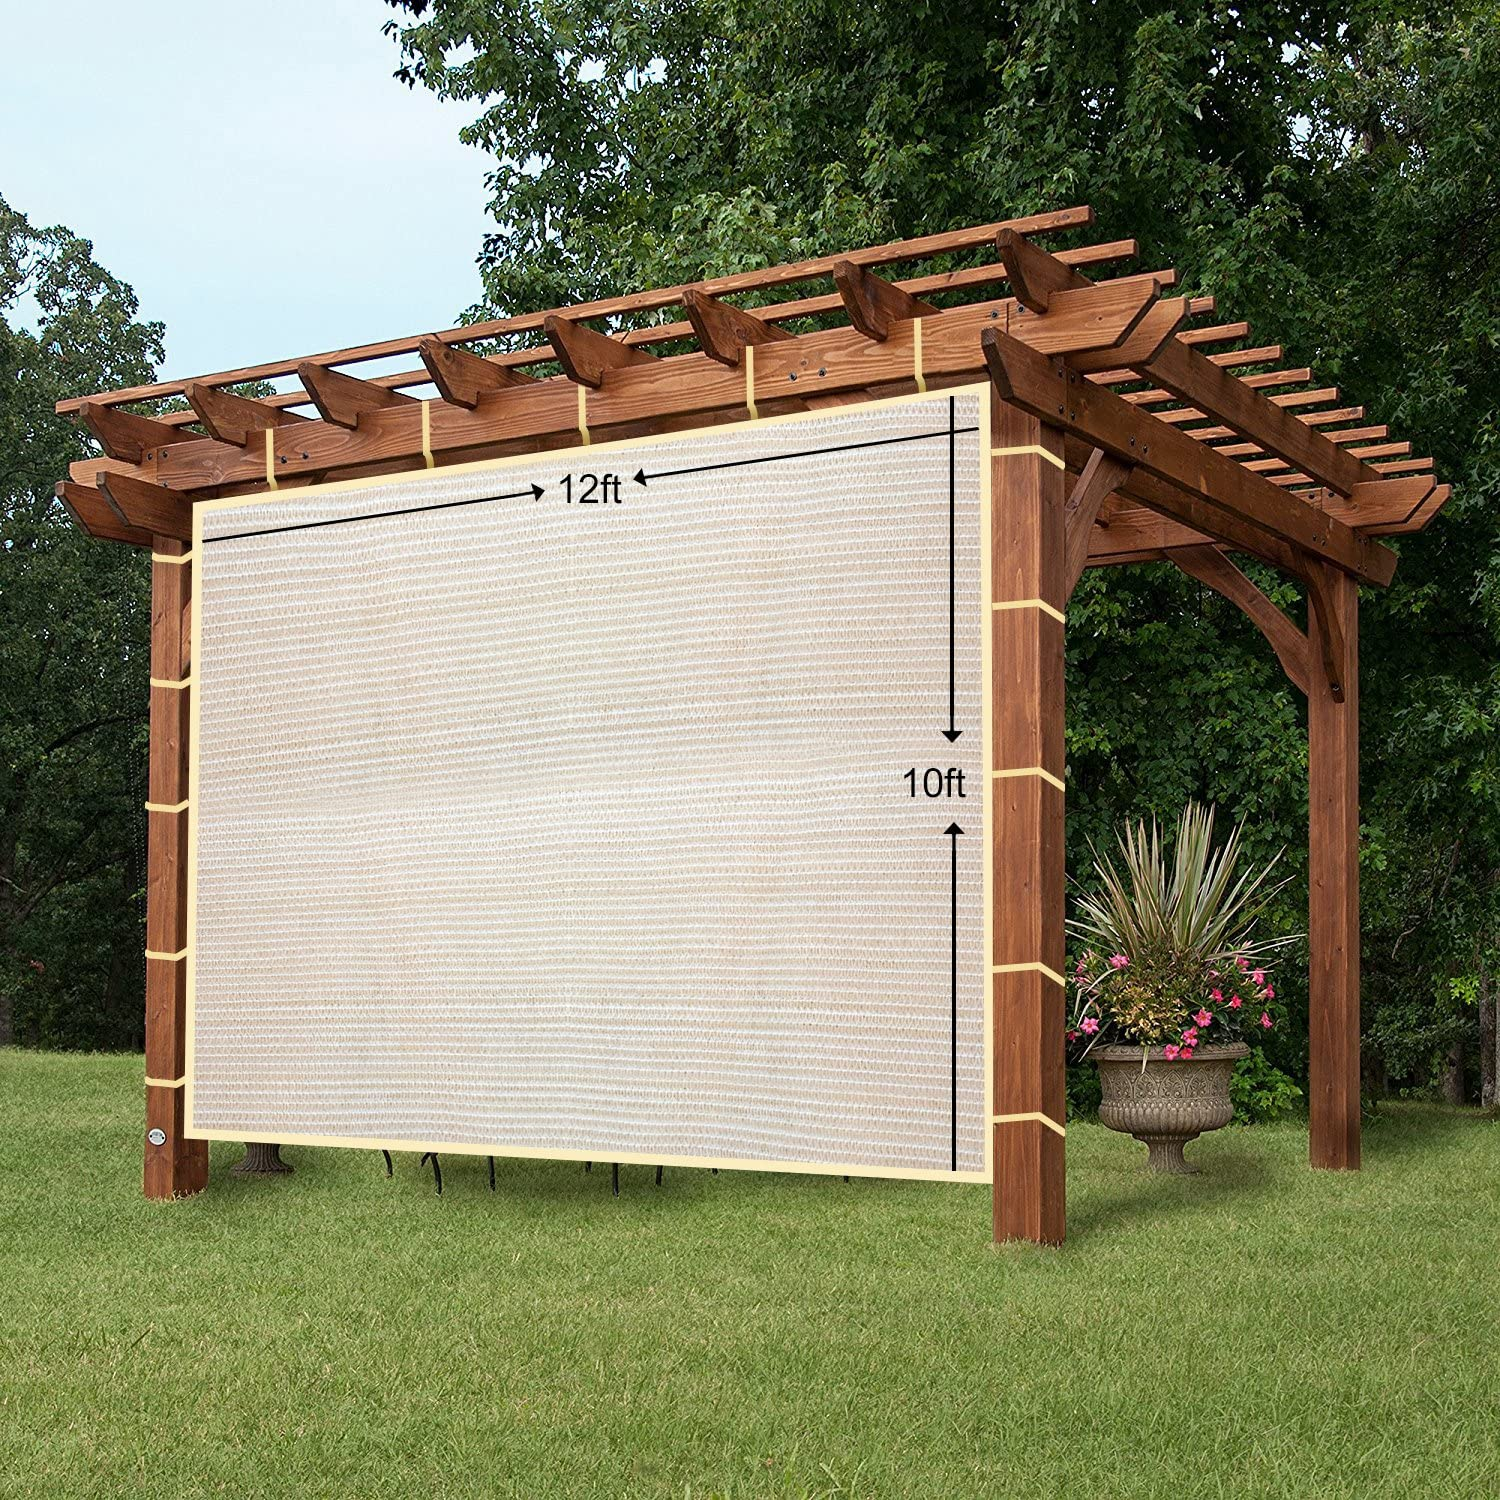 easy2hang Durable Parasol privacidad Panel con cuerda para pérgola, Side lámpara de pared para Instant toldo o Gazebo, tela, Wheat, 12x10: Amazon.es: Hogar